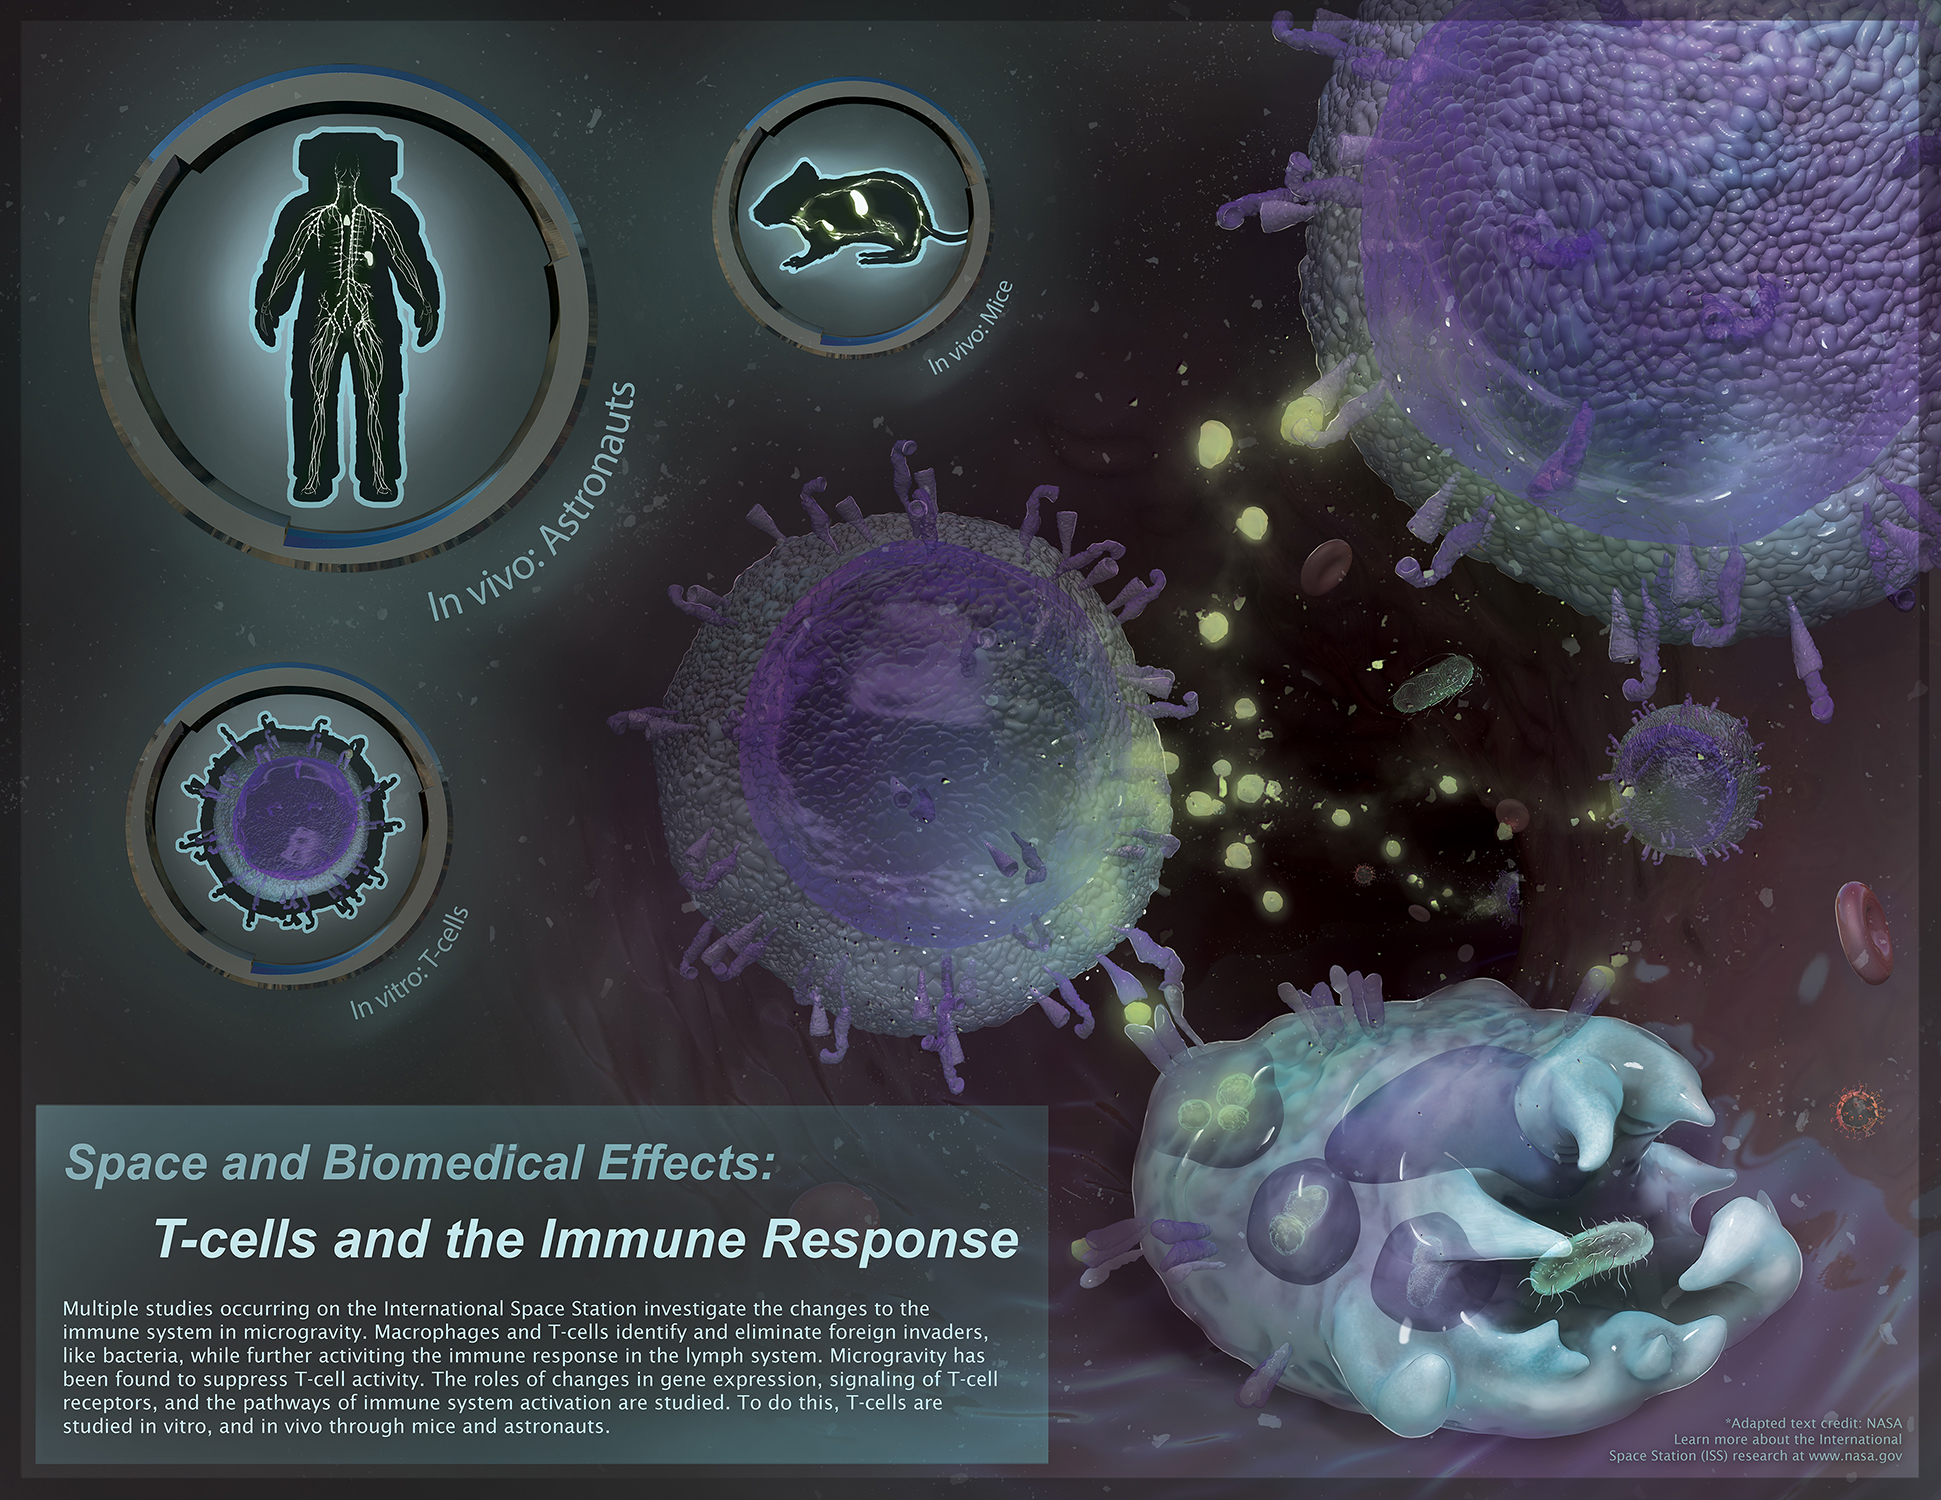 Space and Biomedical Effects: T-cells